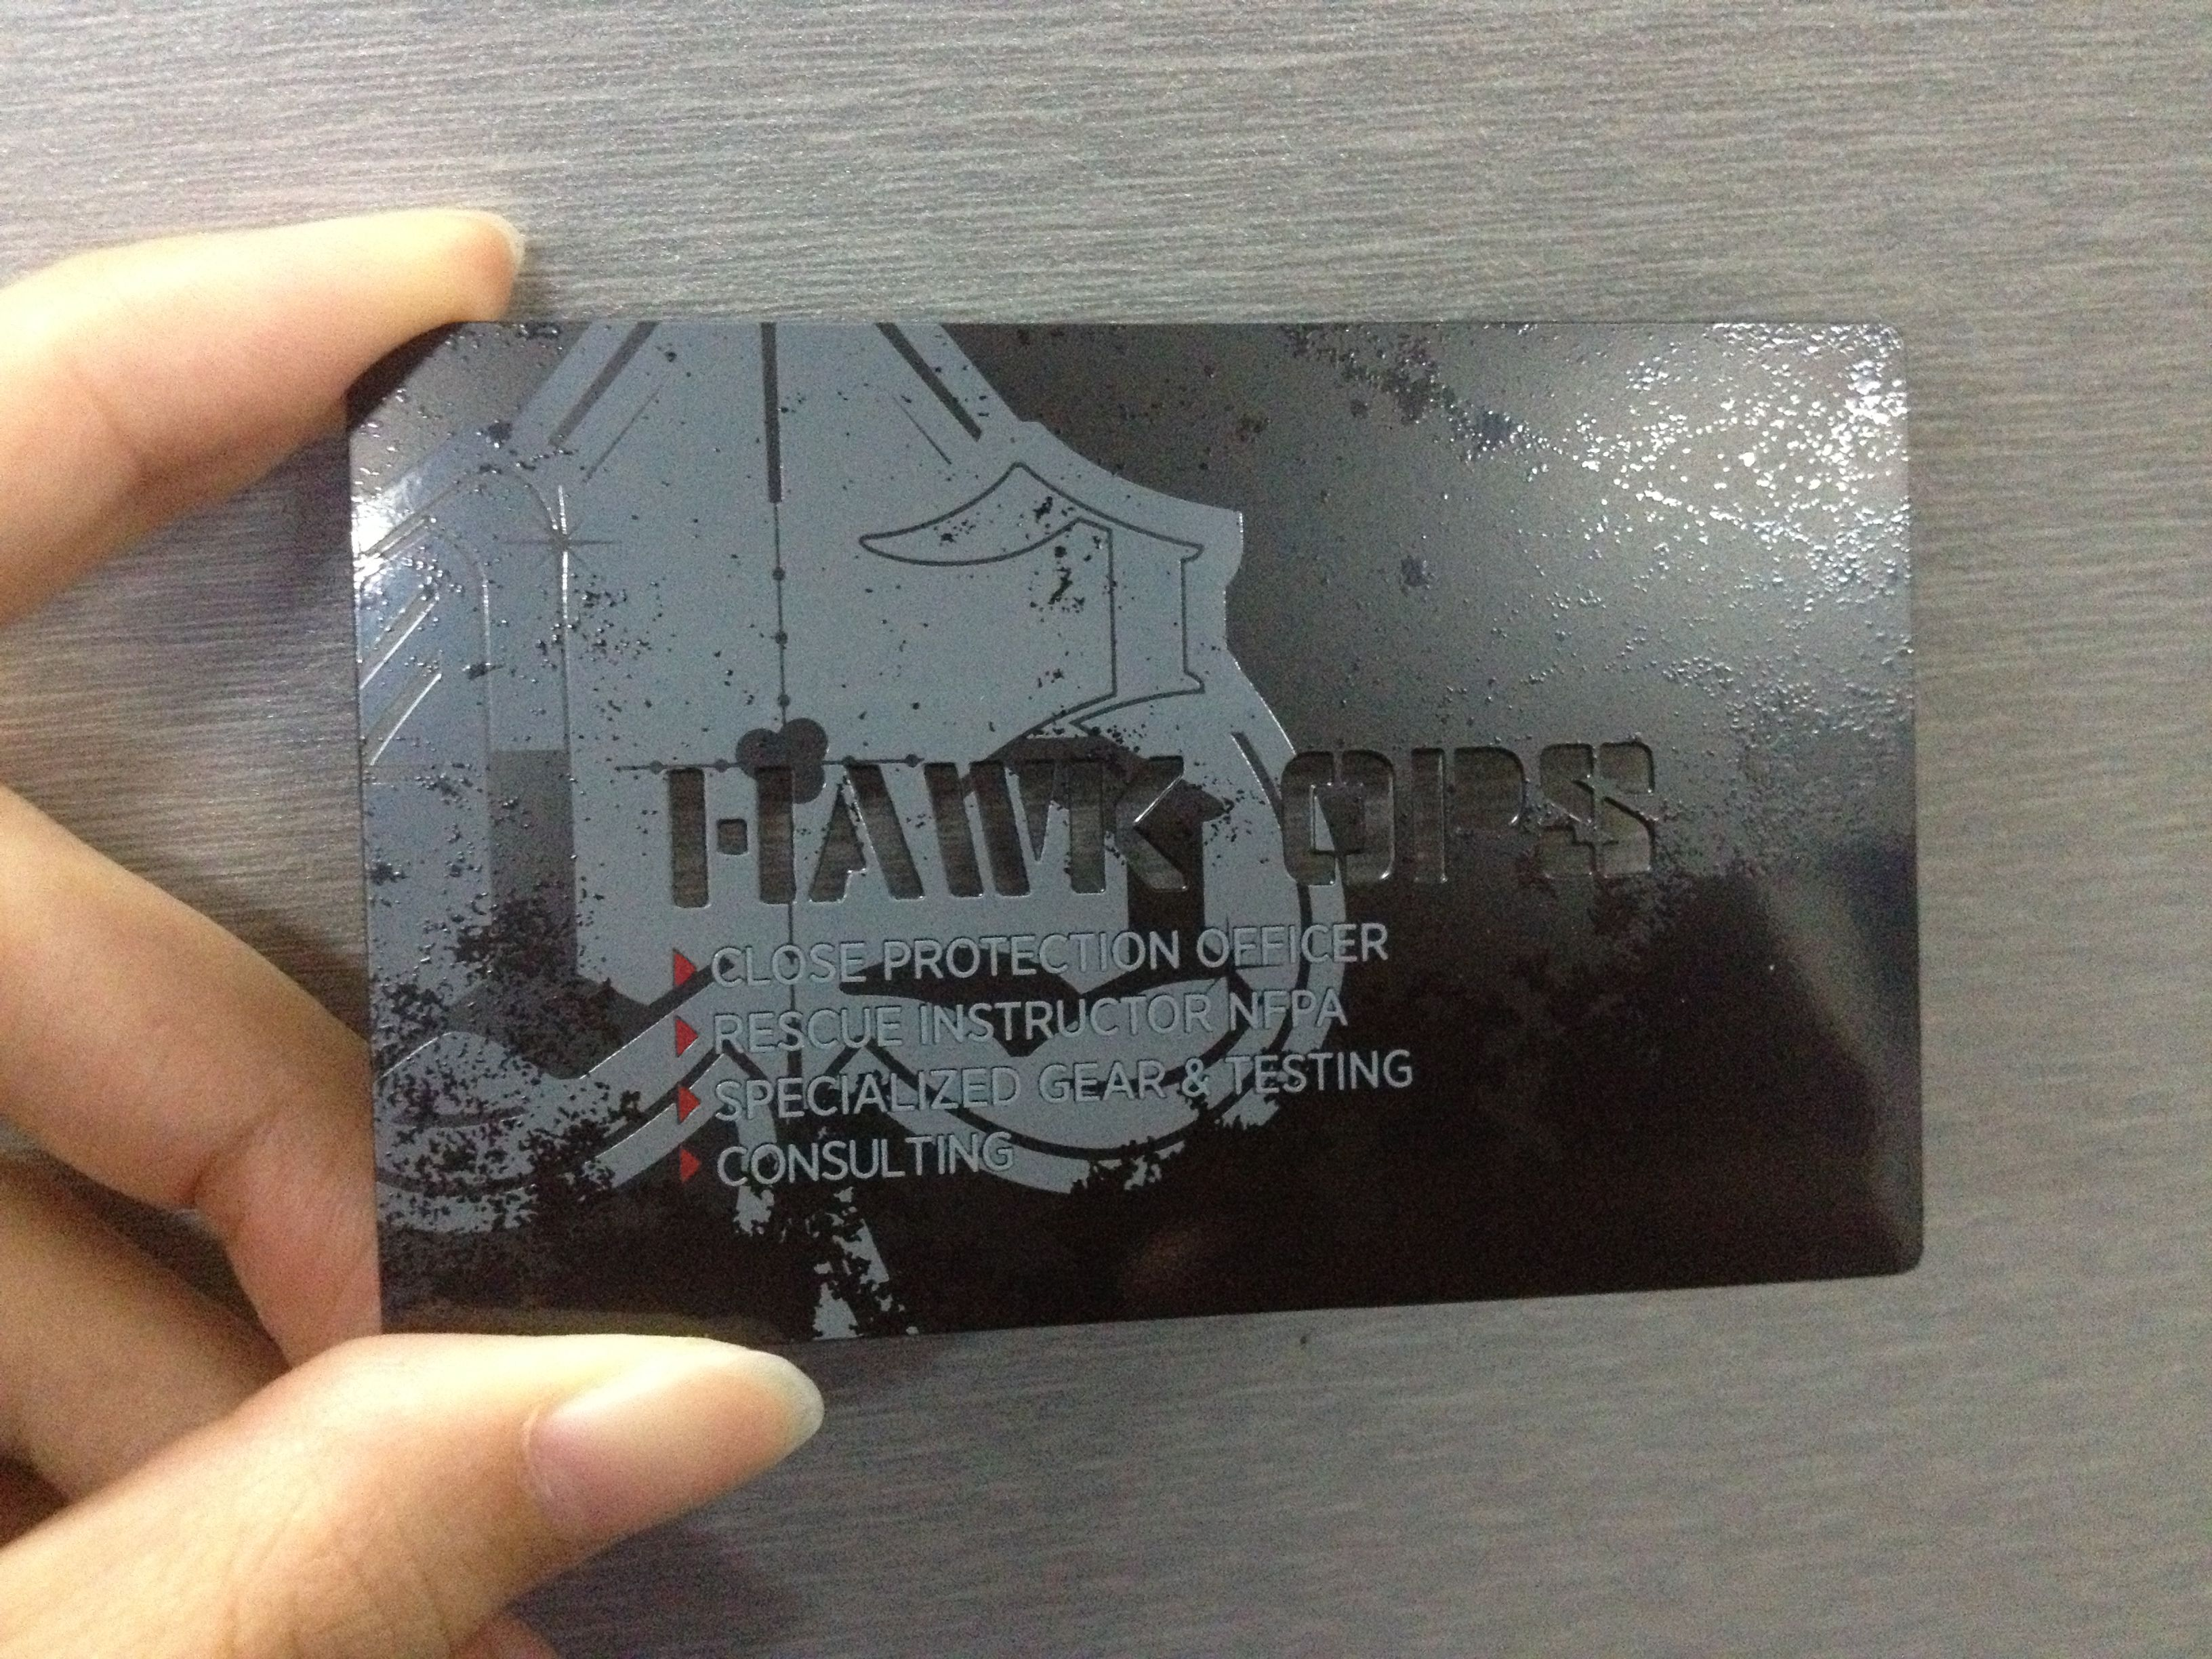 Military metal business cards business cards pinterest military metal business cards reheart Gallery